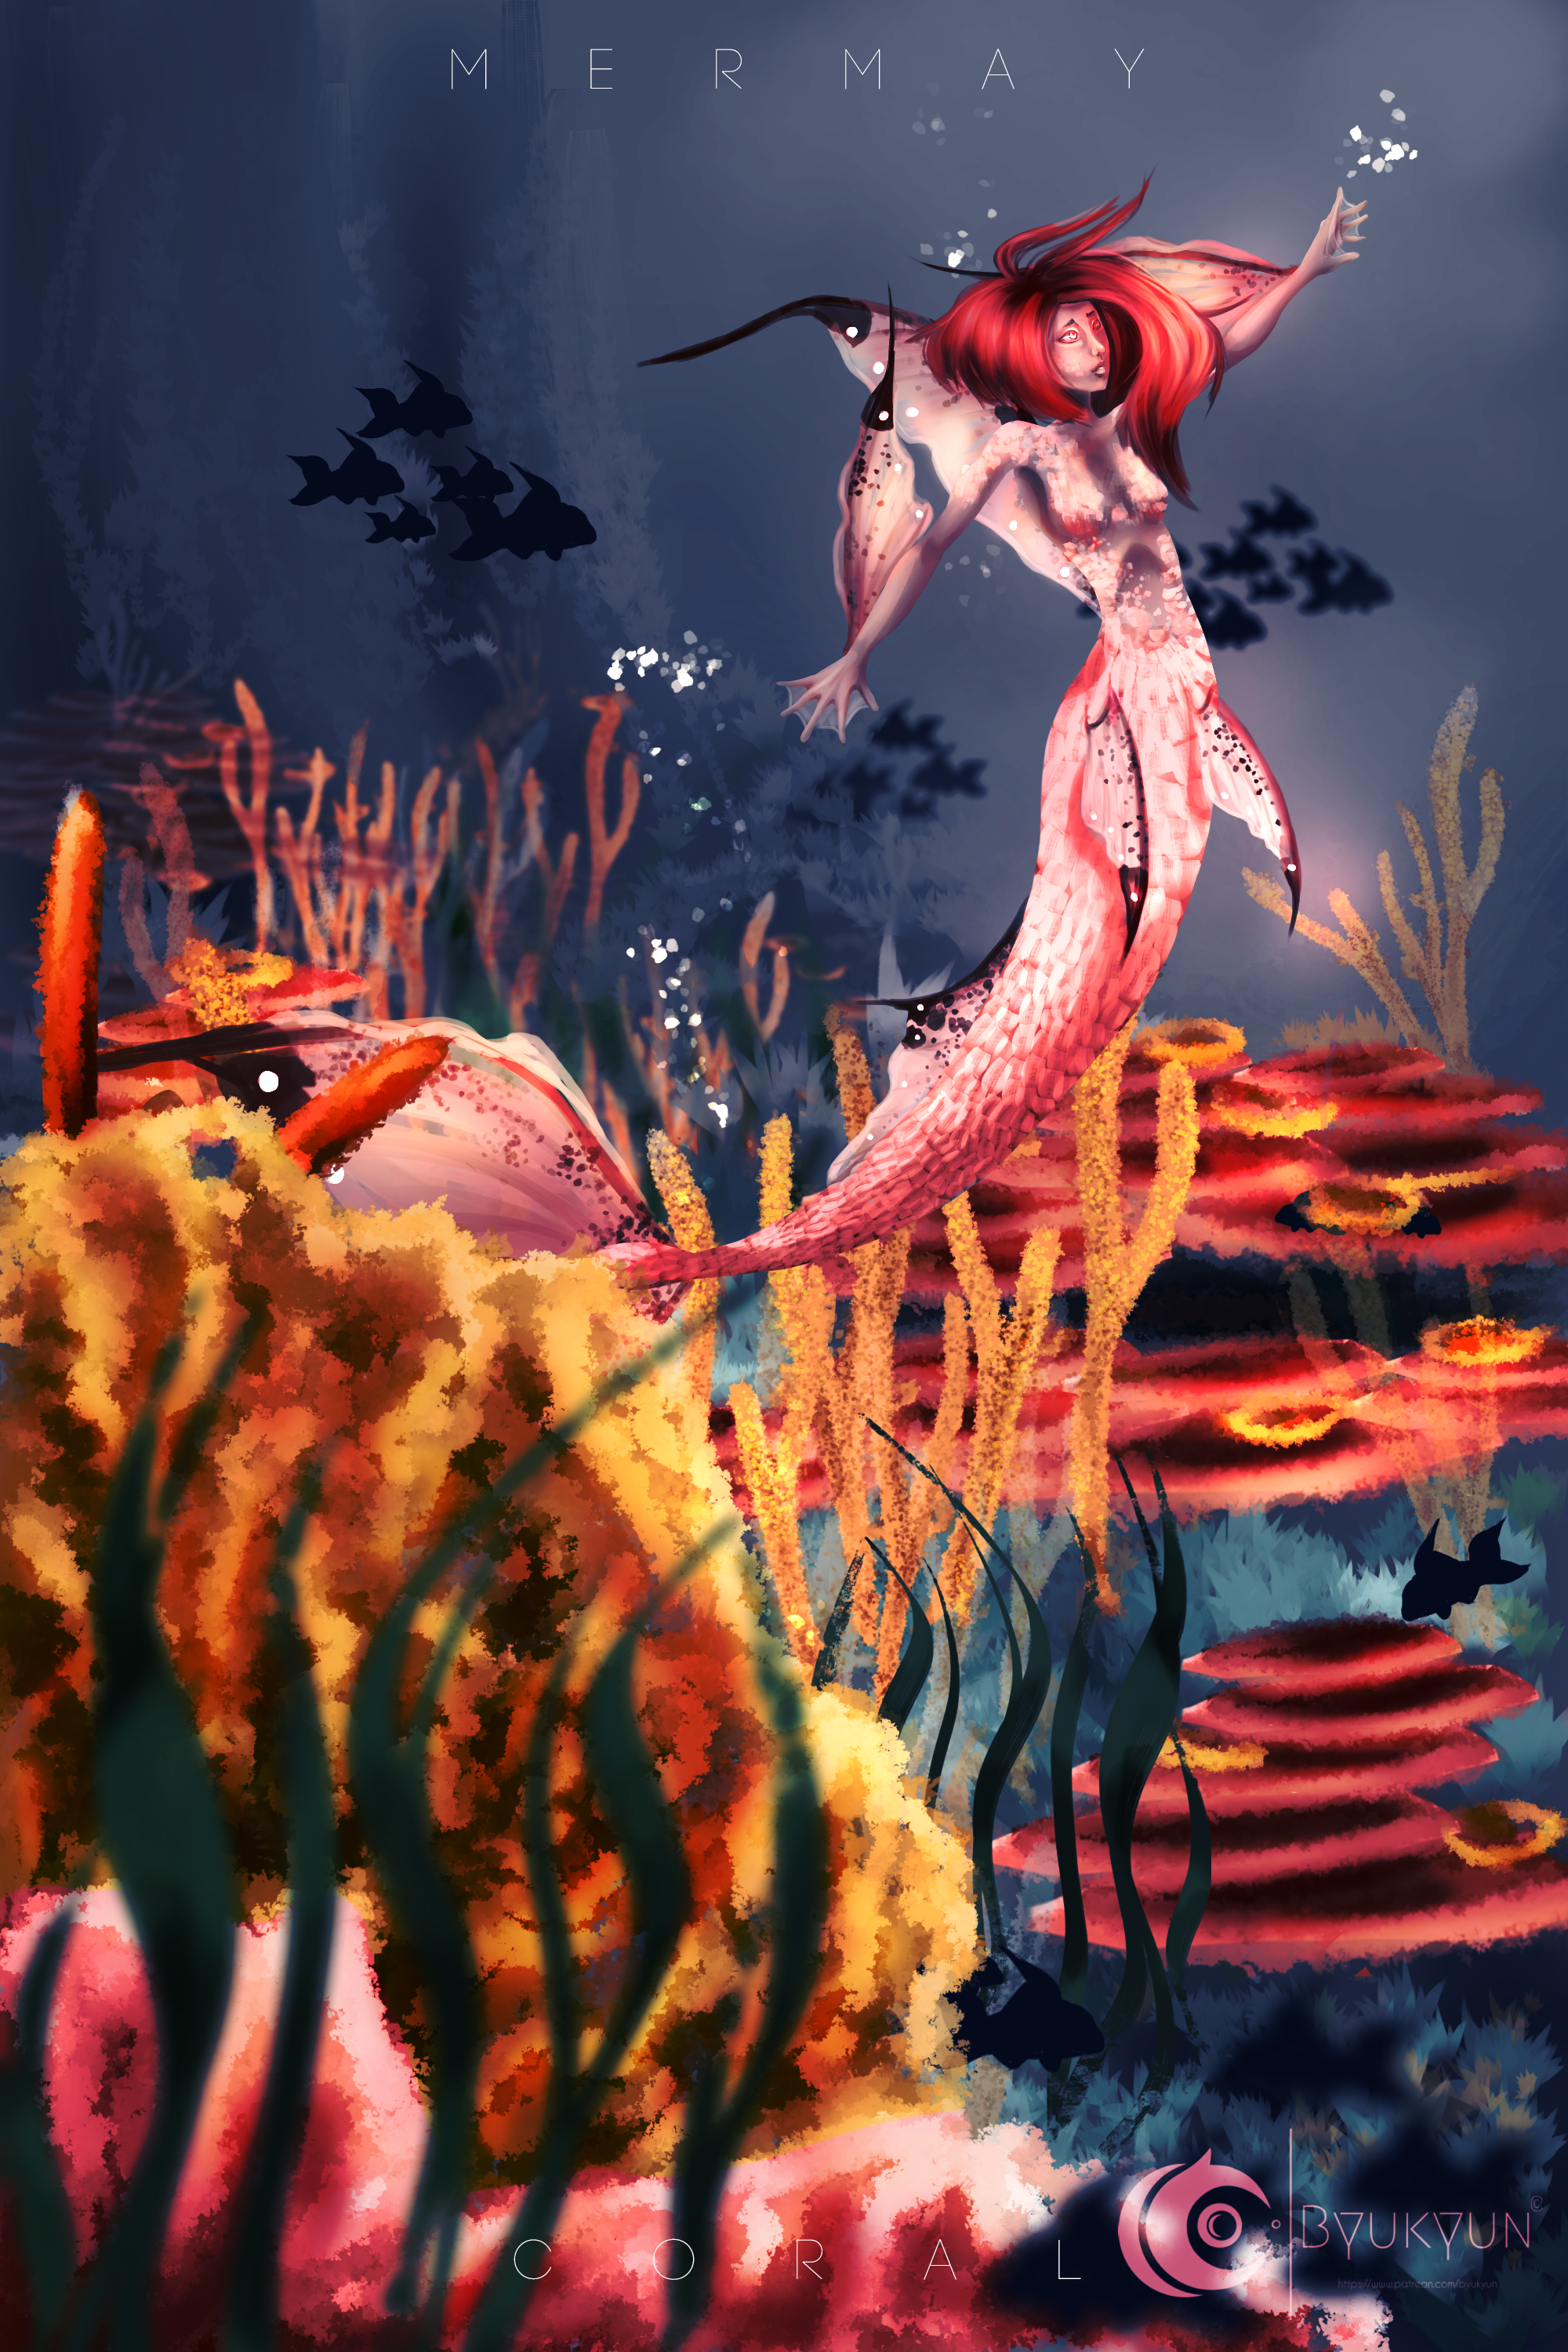 Mermay challenge day 1-3